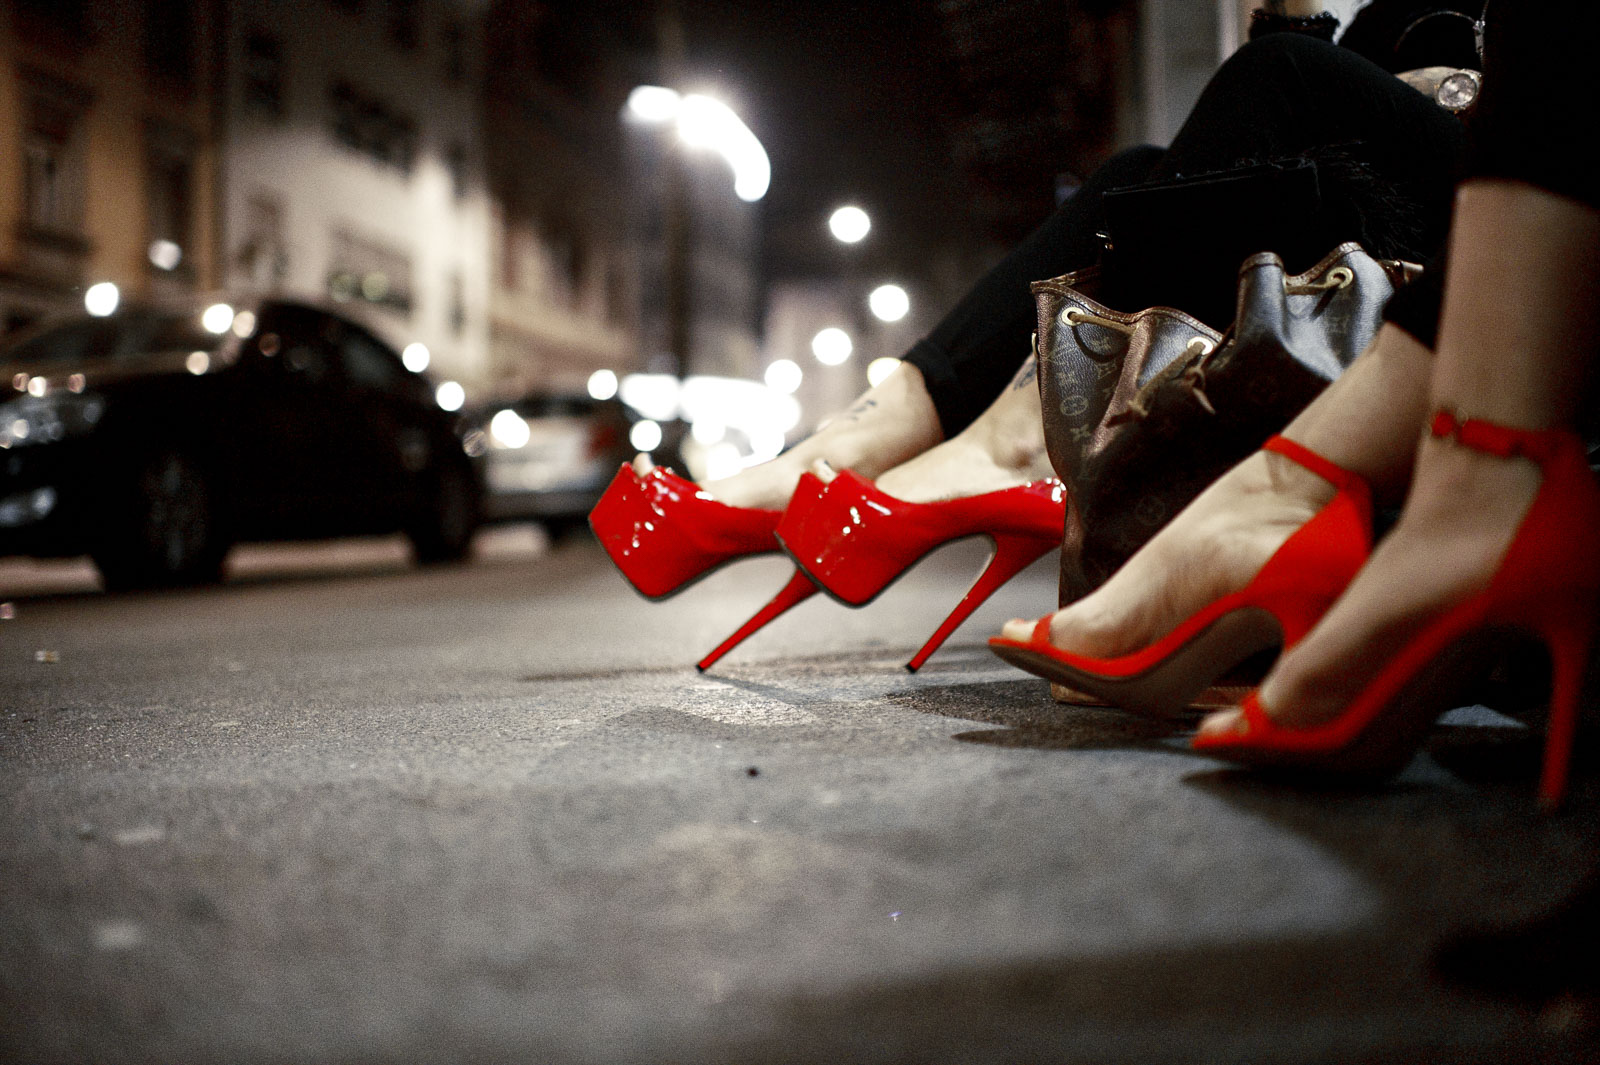 Hot shoes resting